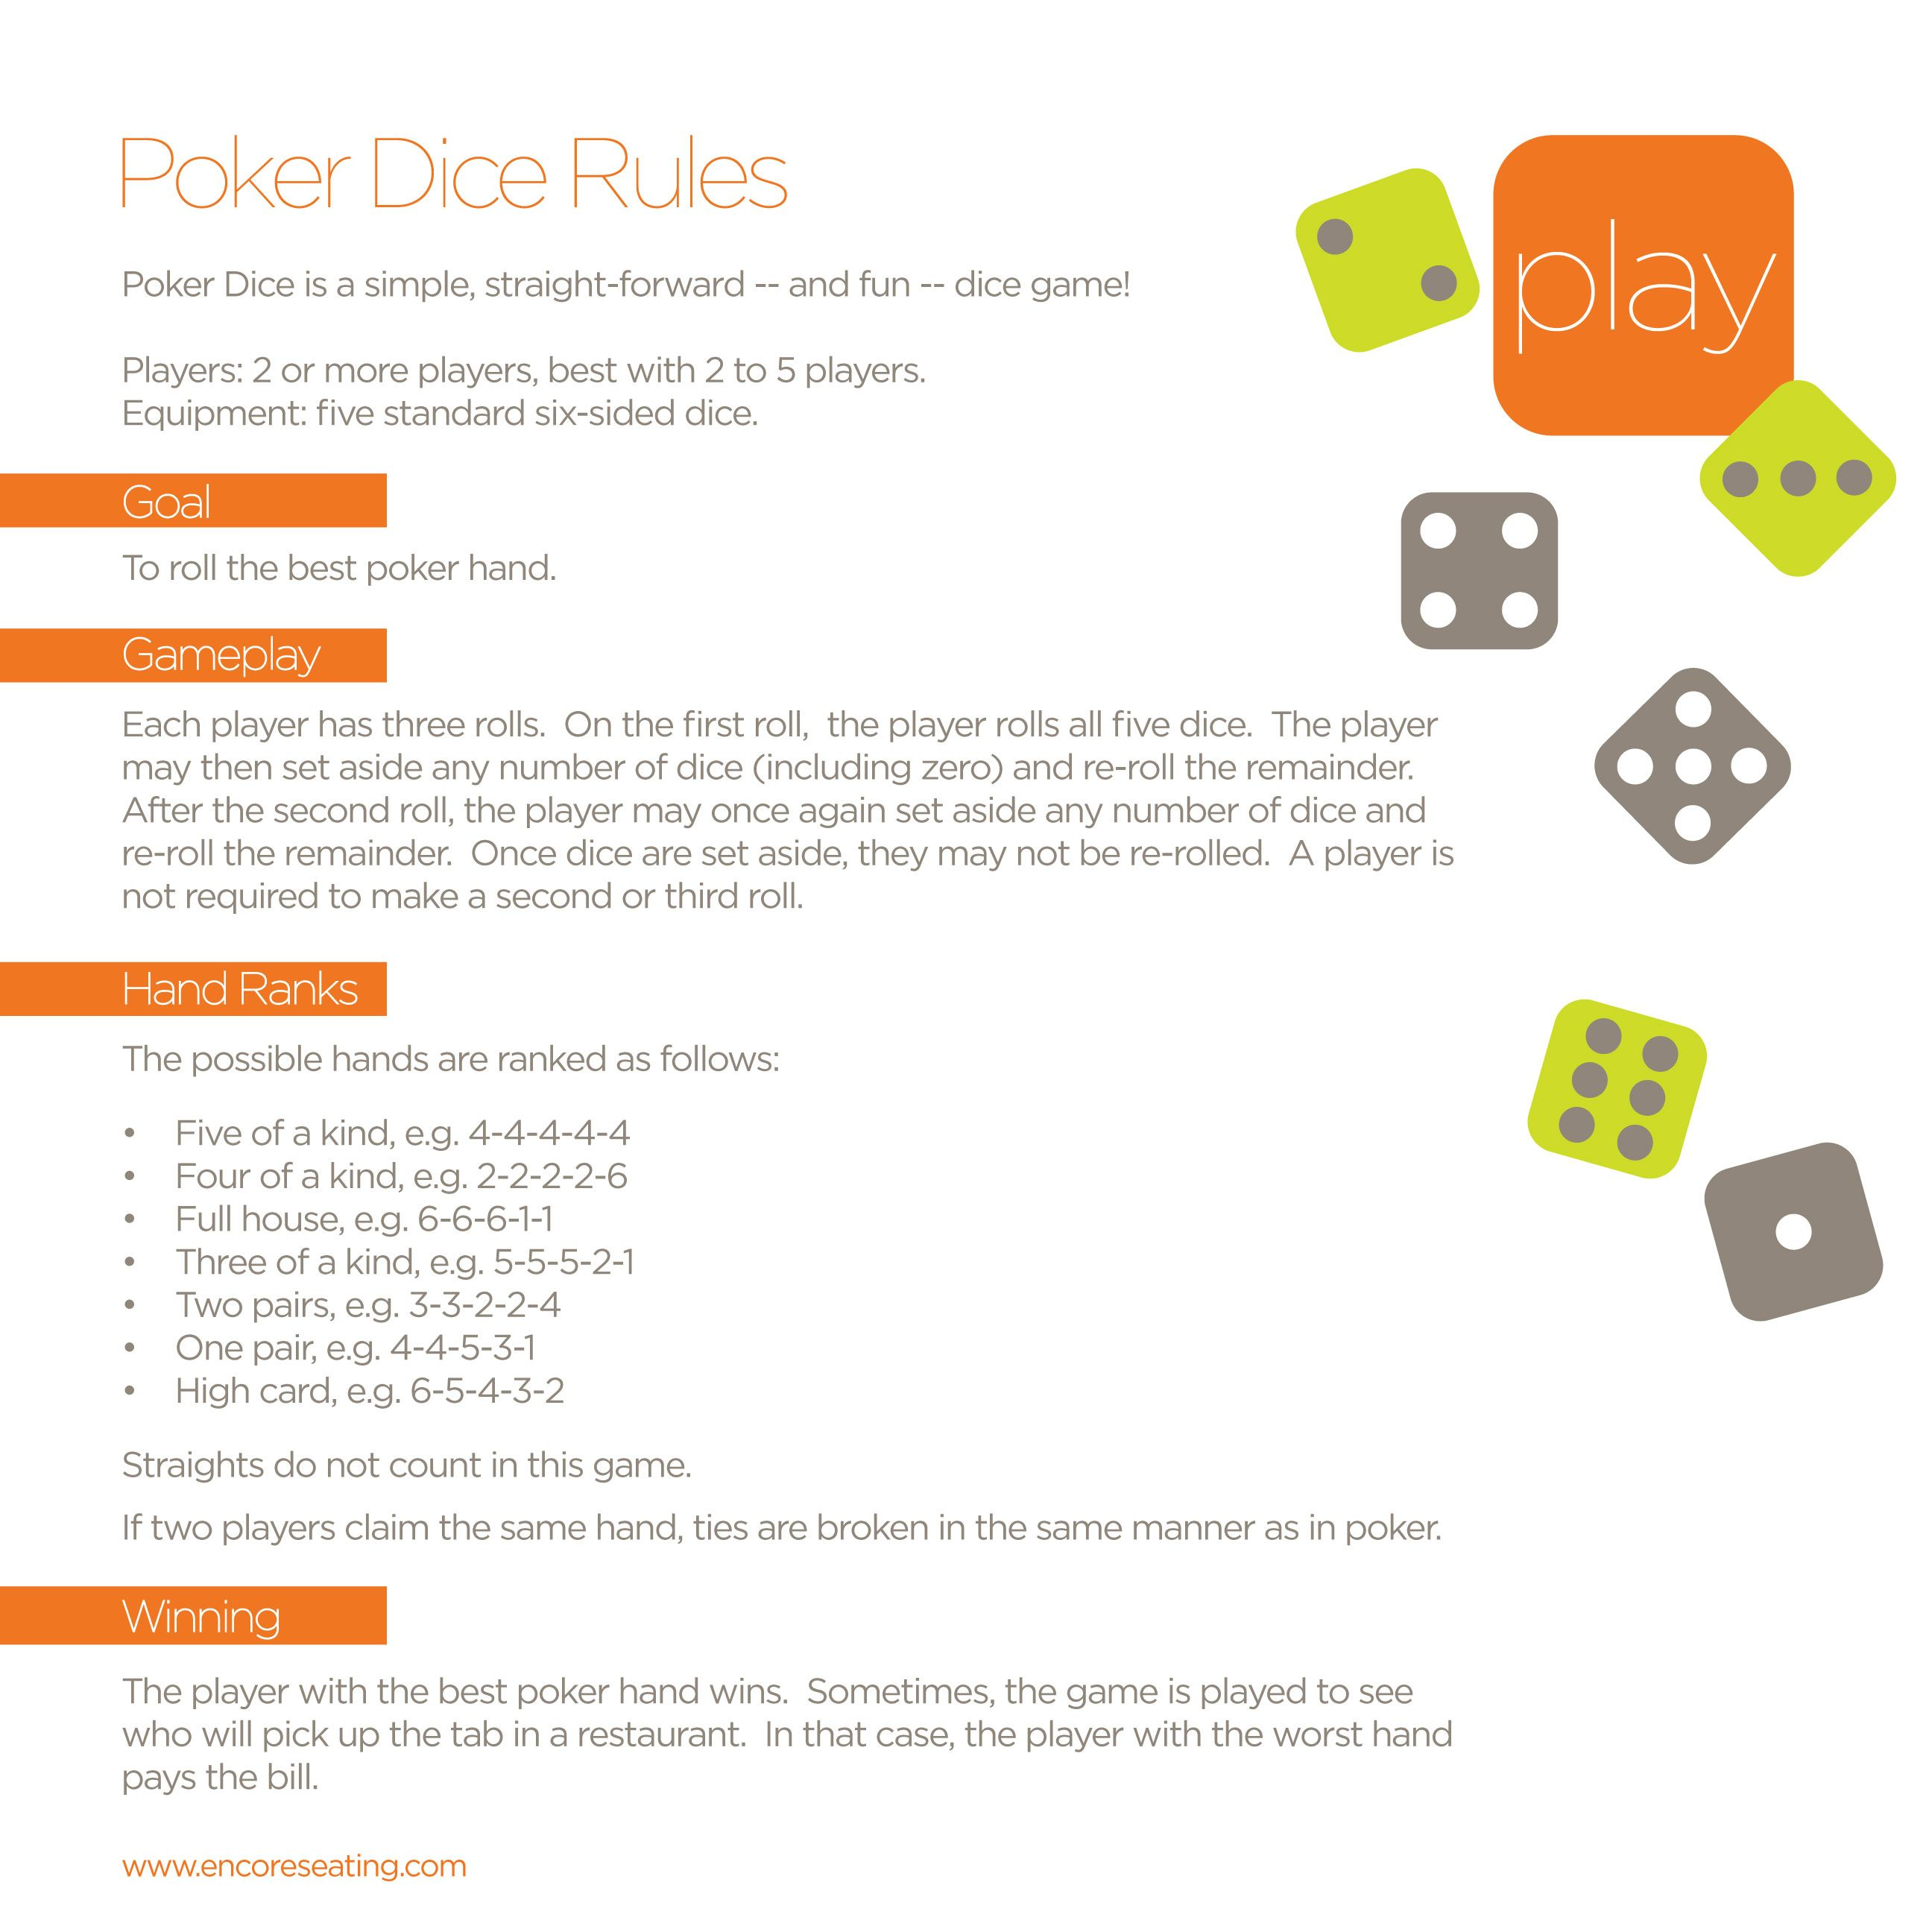 How To Play Poker Dice Dice Games Diy Games Poker Hands